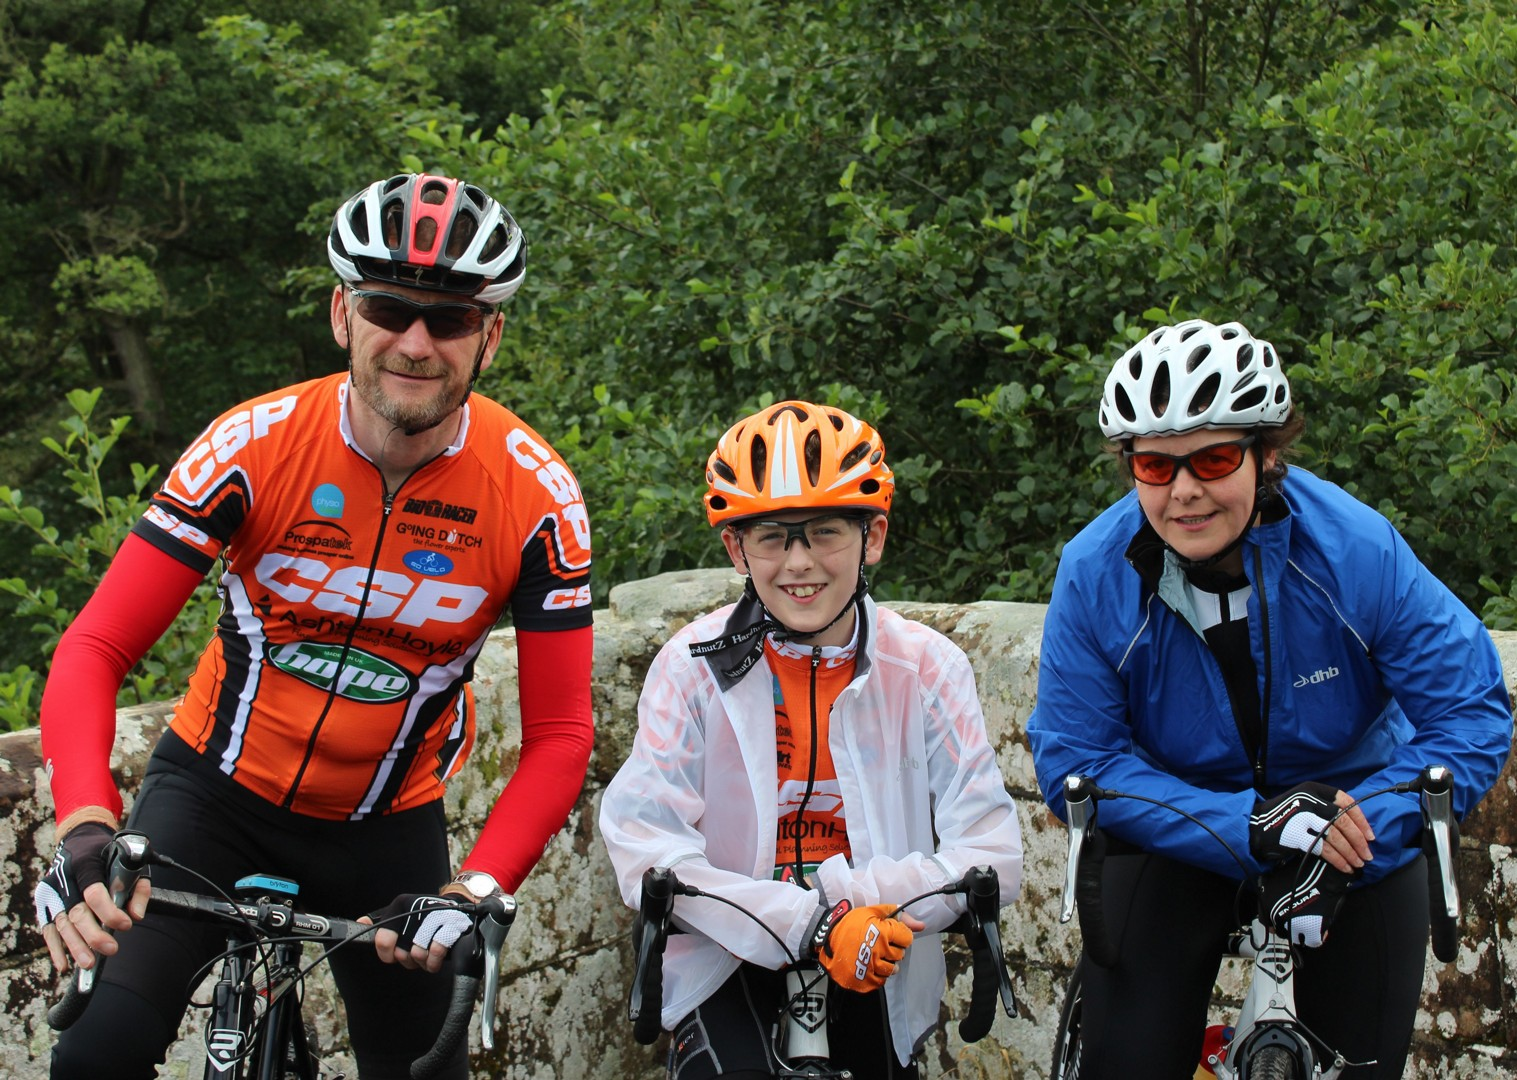 family-self-guided-hadrians-cycleway-uk.jpg - UK - Hadrian's Cycleway - 4 Days Cycling - Self-Guided Family Cycling Holiday - Family Cycling